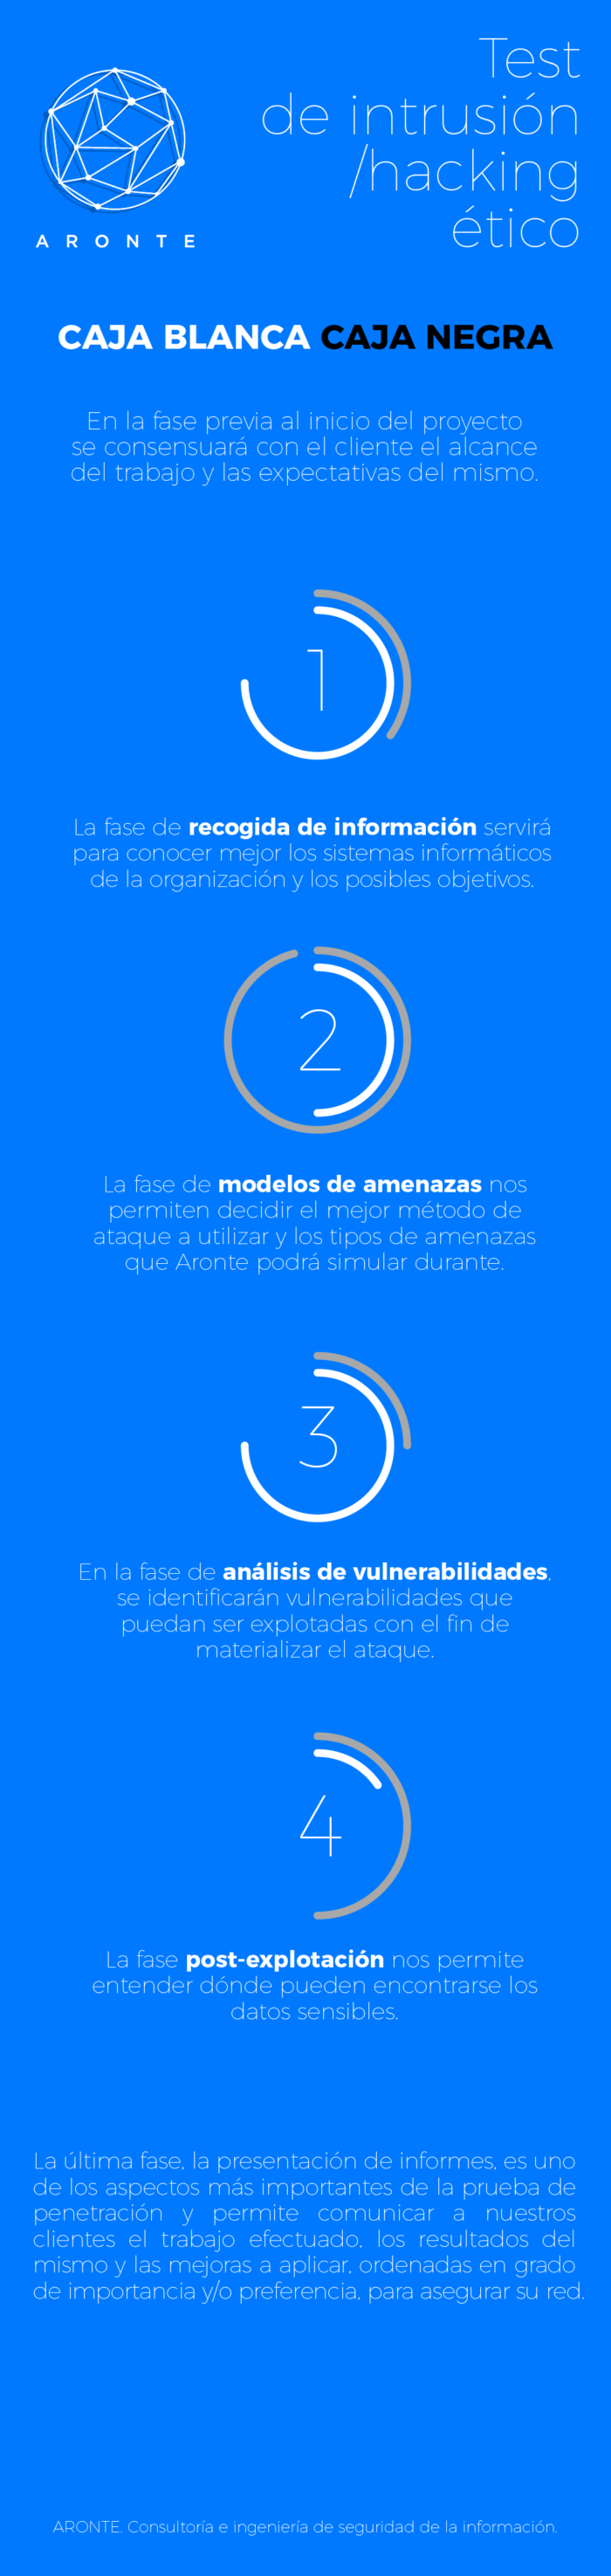 infografia_test_hacking-01